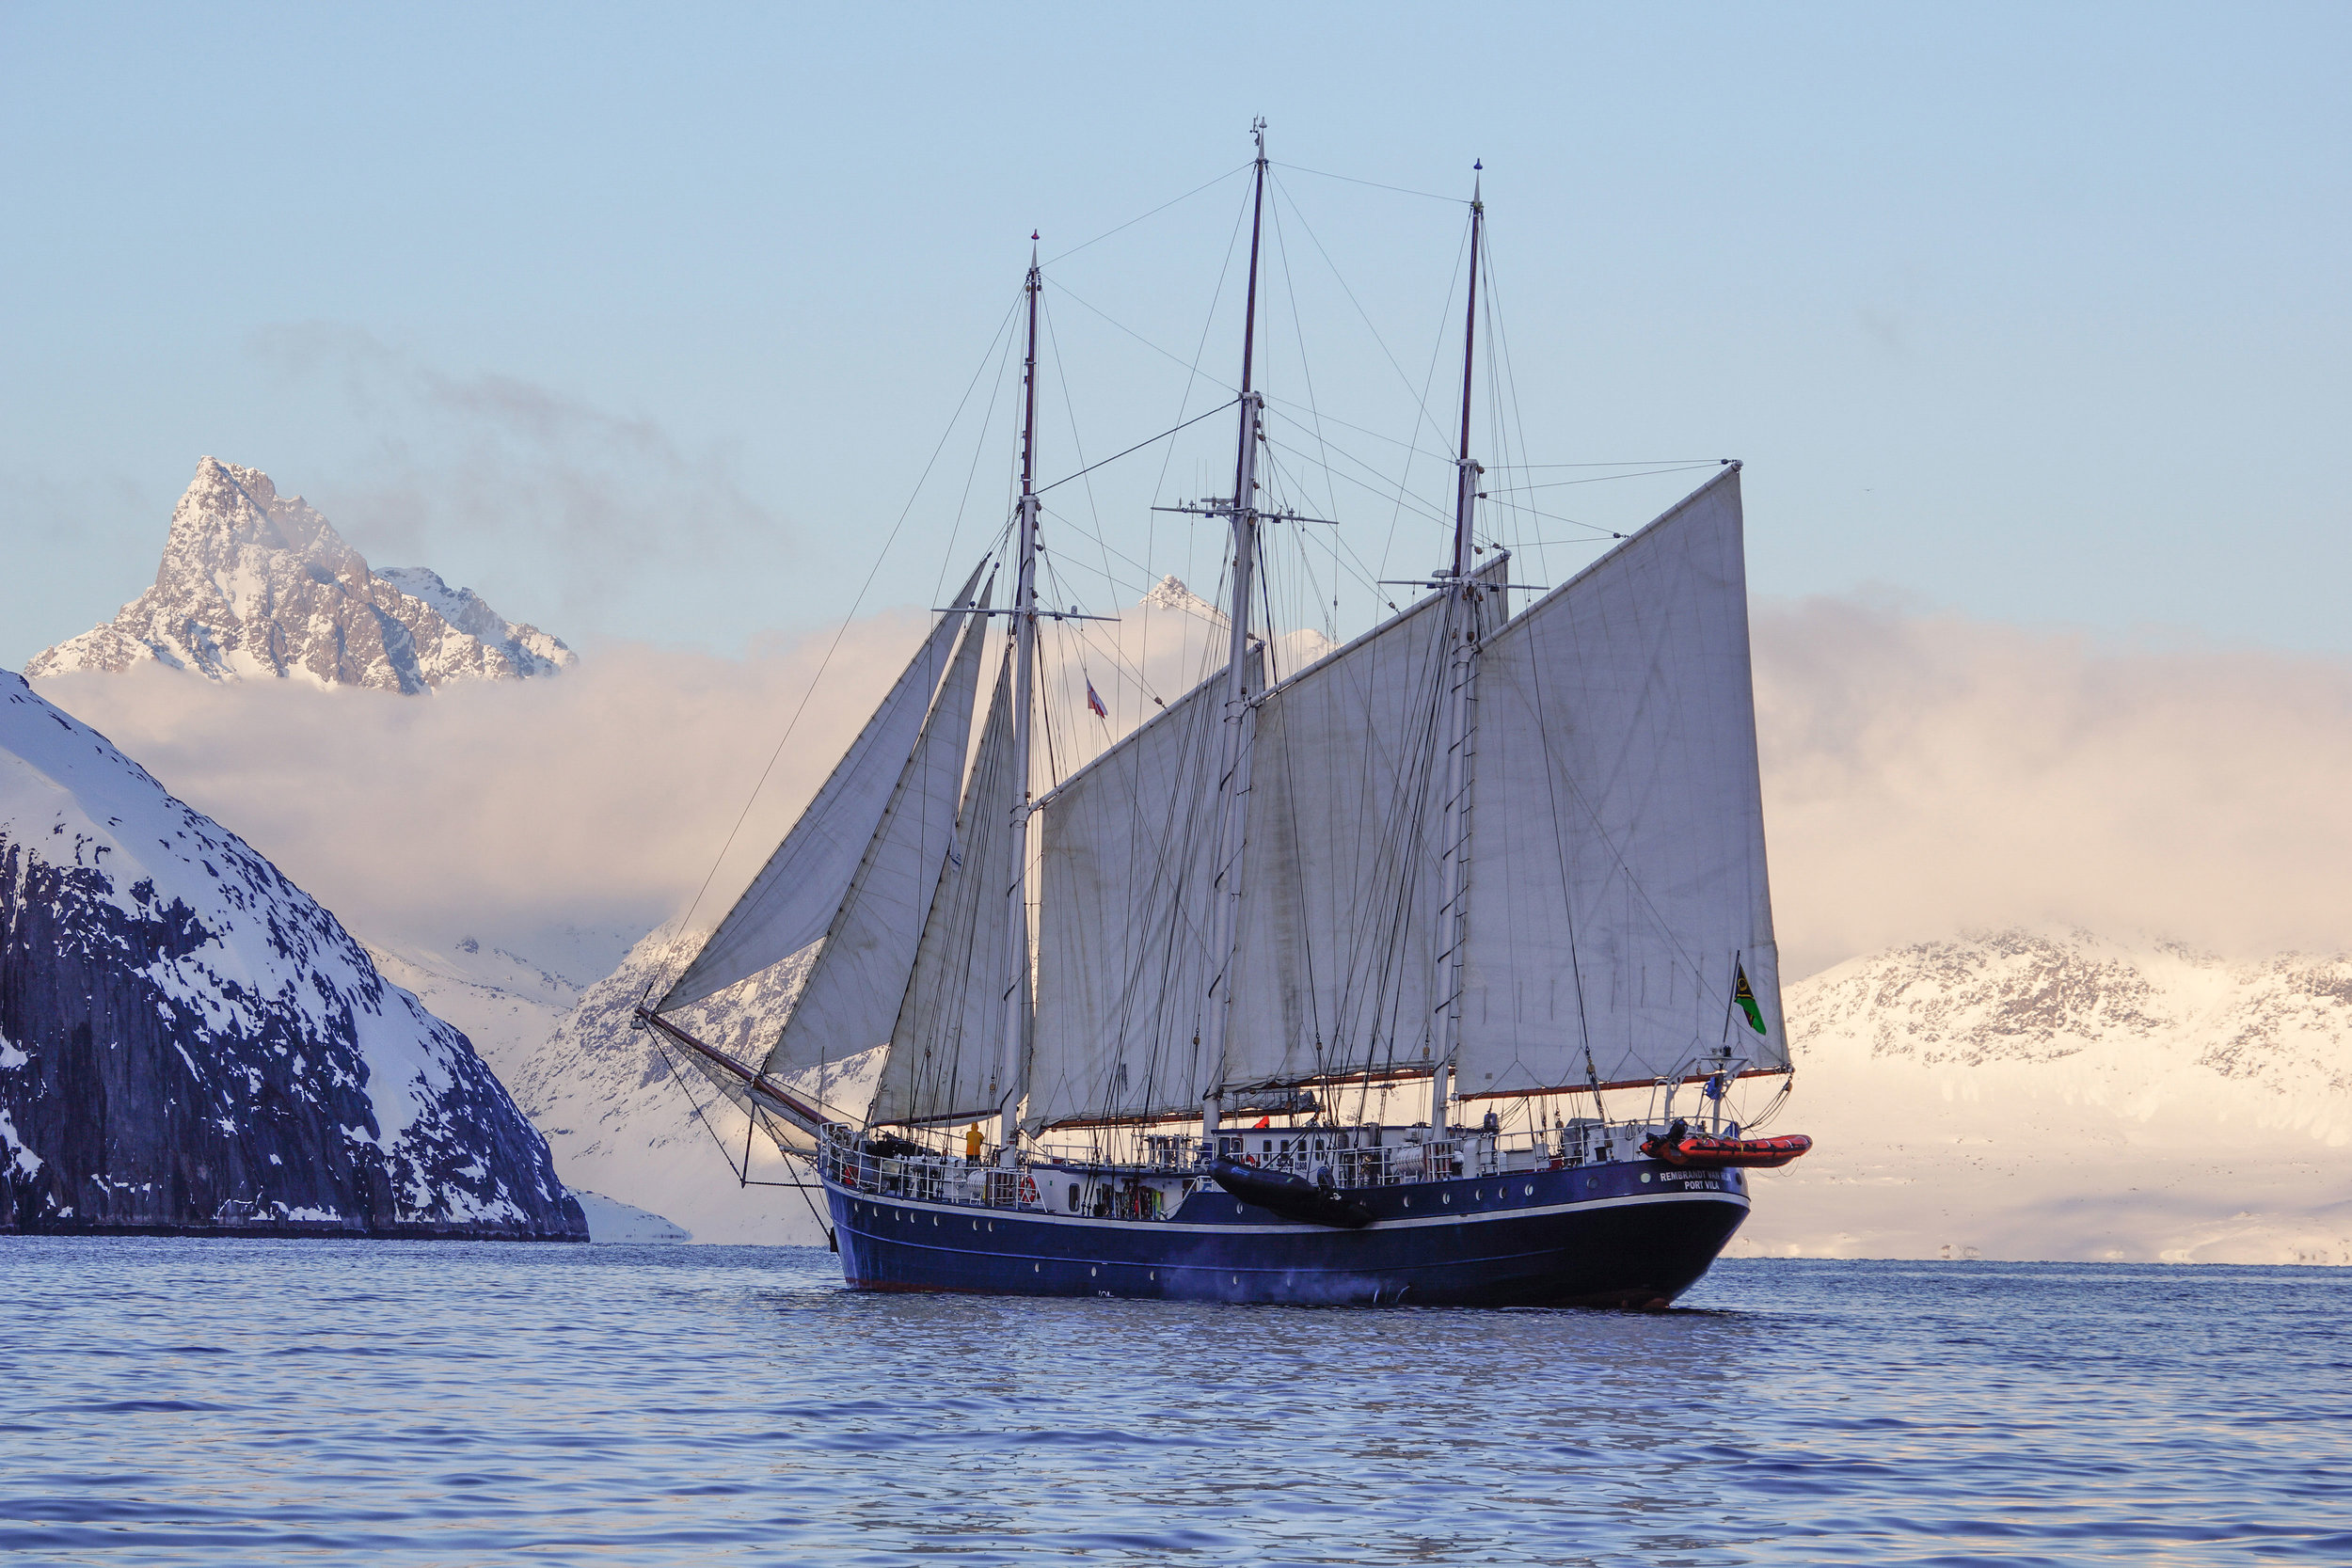 Rembrandt-van-Rijn_Oceanwide-Expeditions.jpg